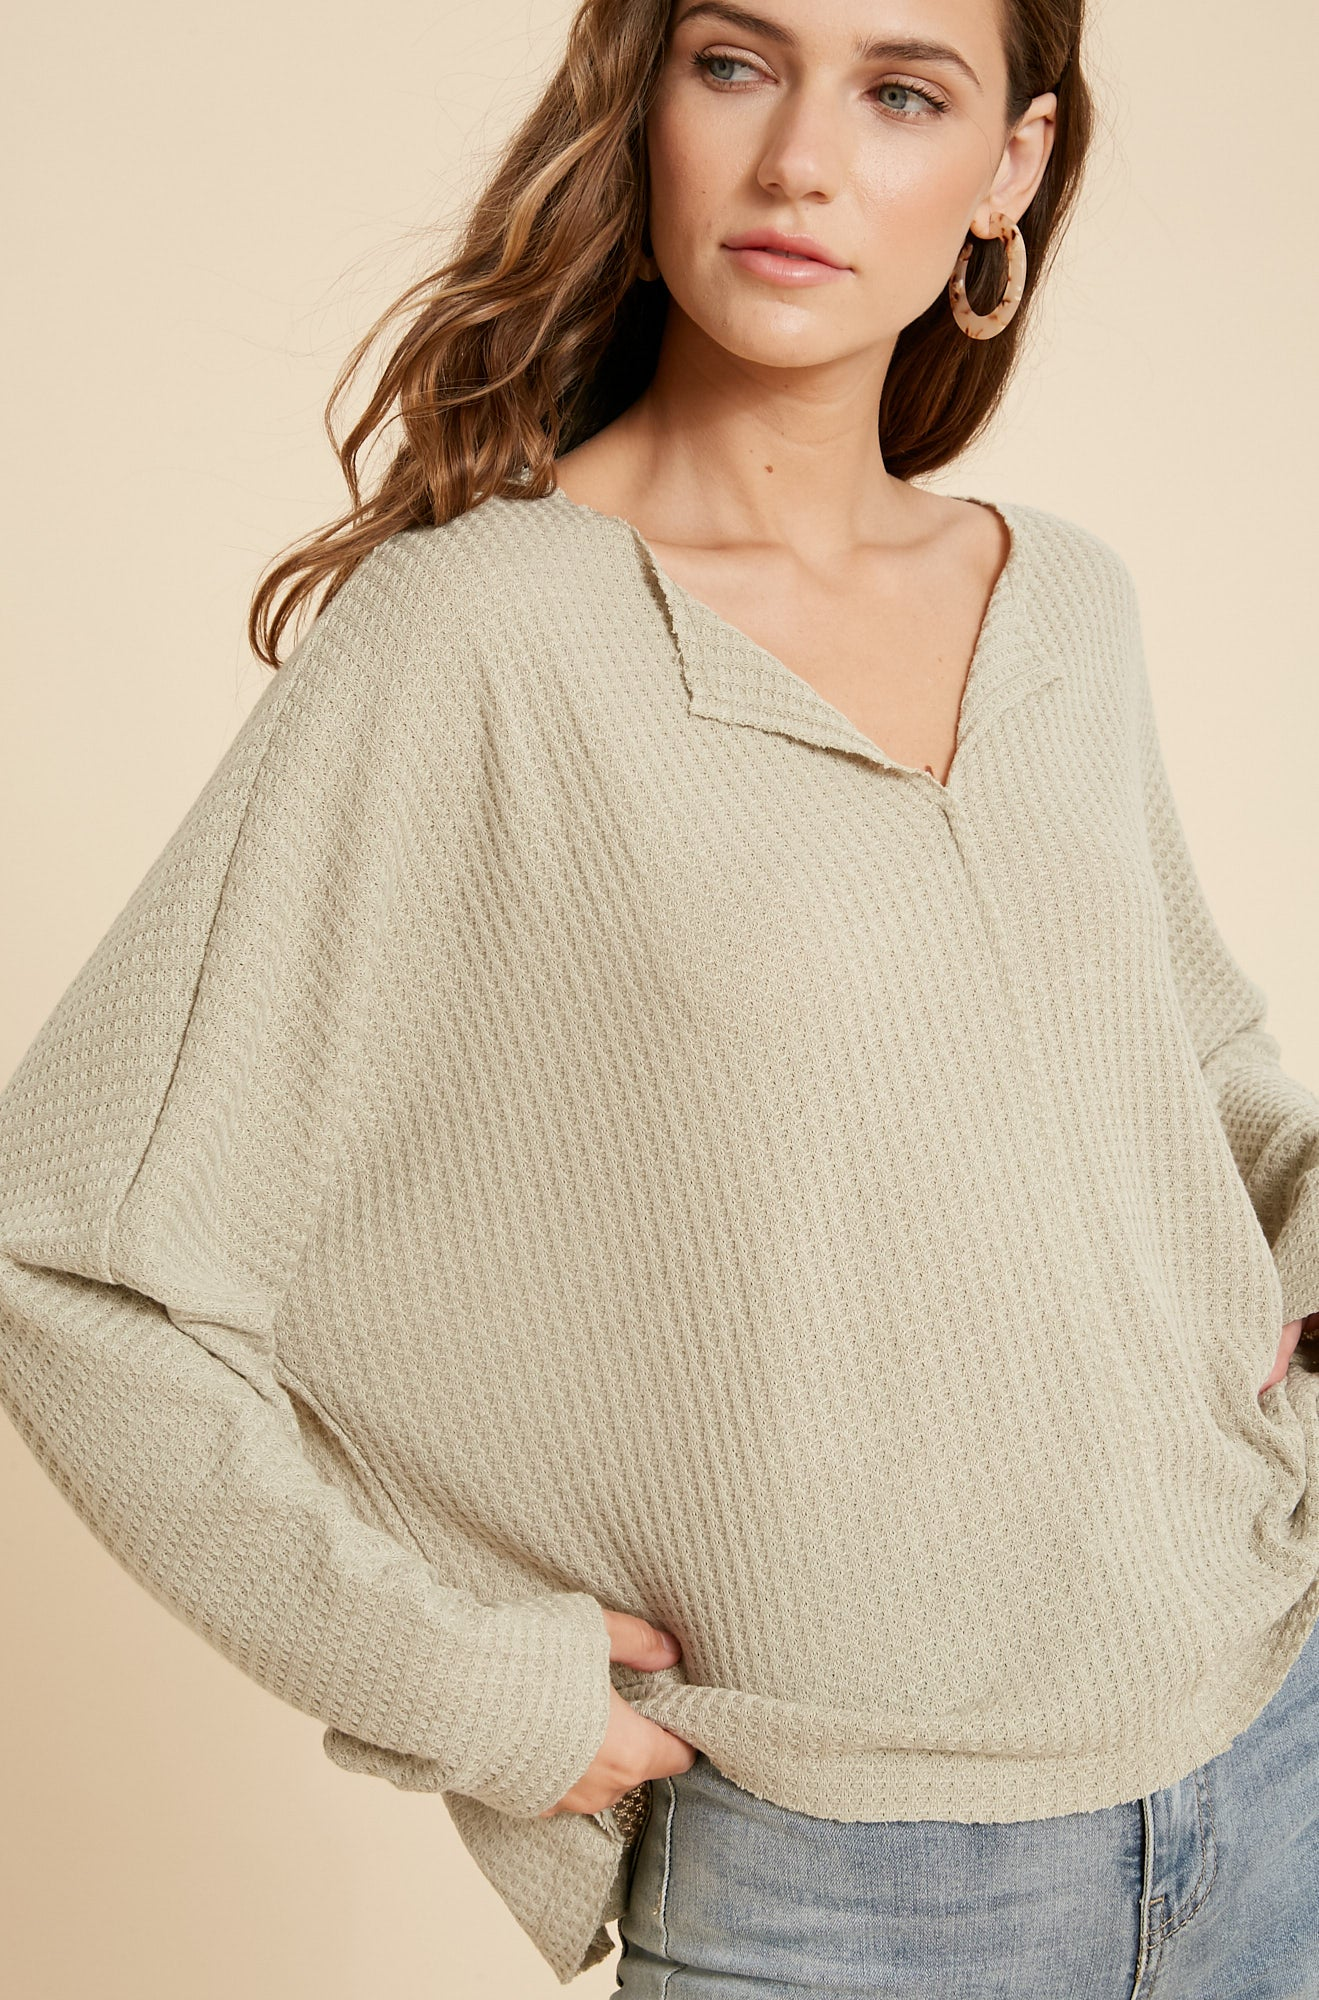 Whisper v neck knit top - Matcha-sweater-Branded Envy